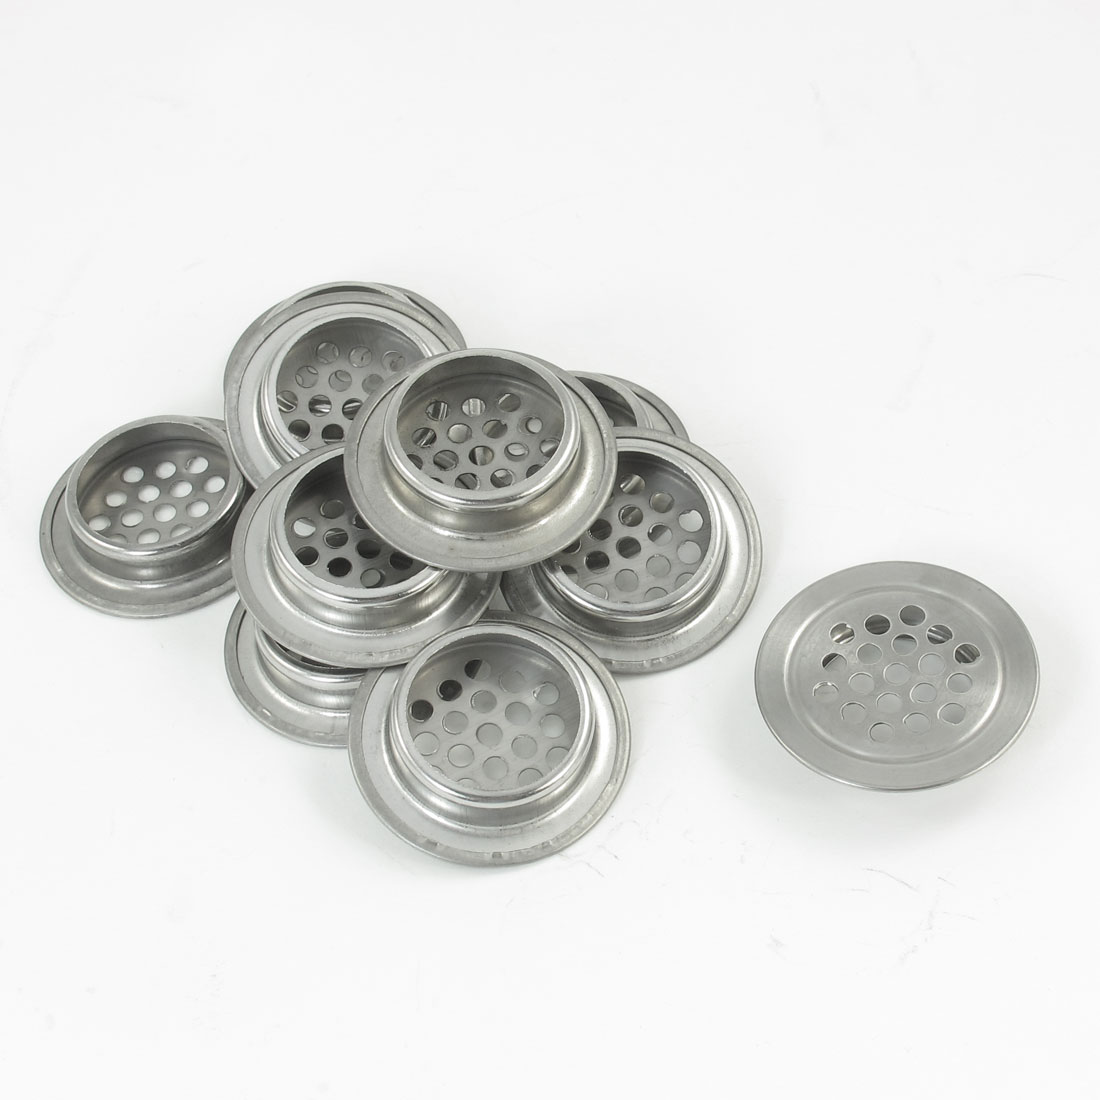 10 Pcs Home Round Silver Tone Metallic Mesh Hole Air Vent Louver